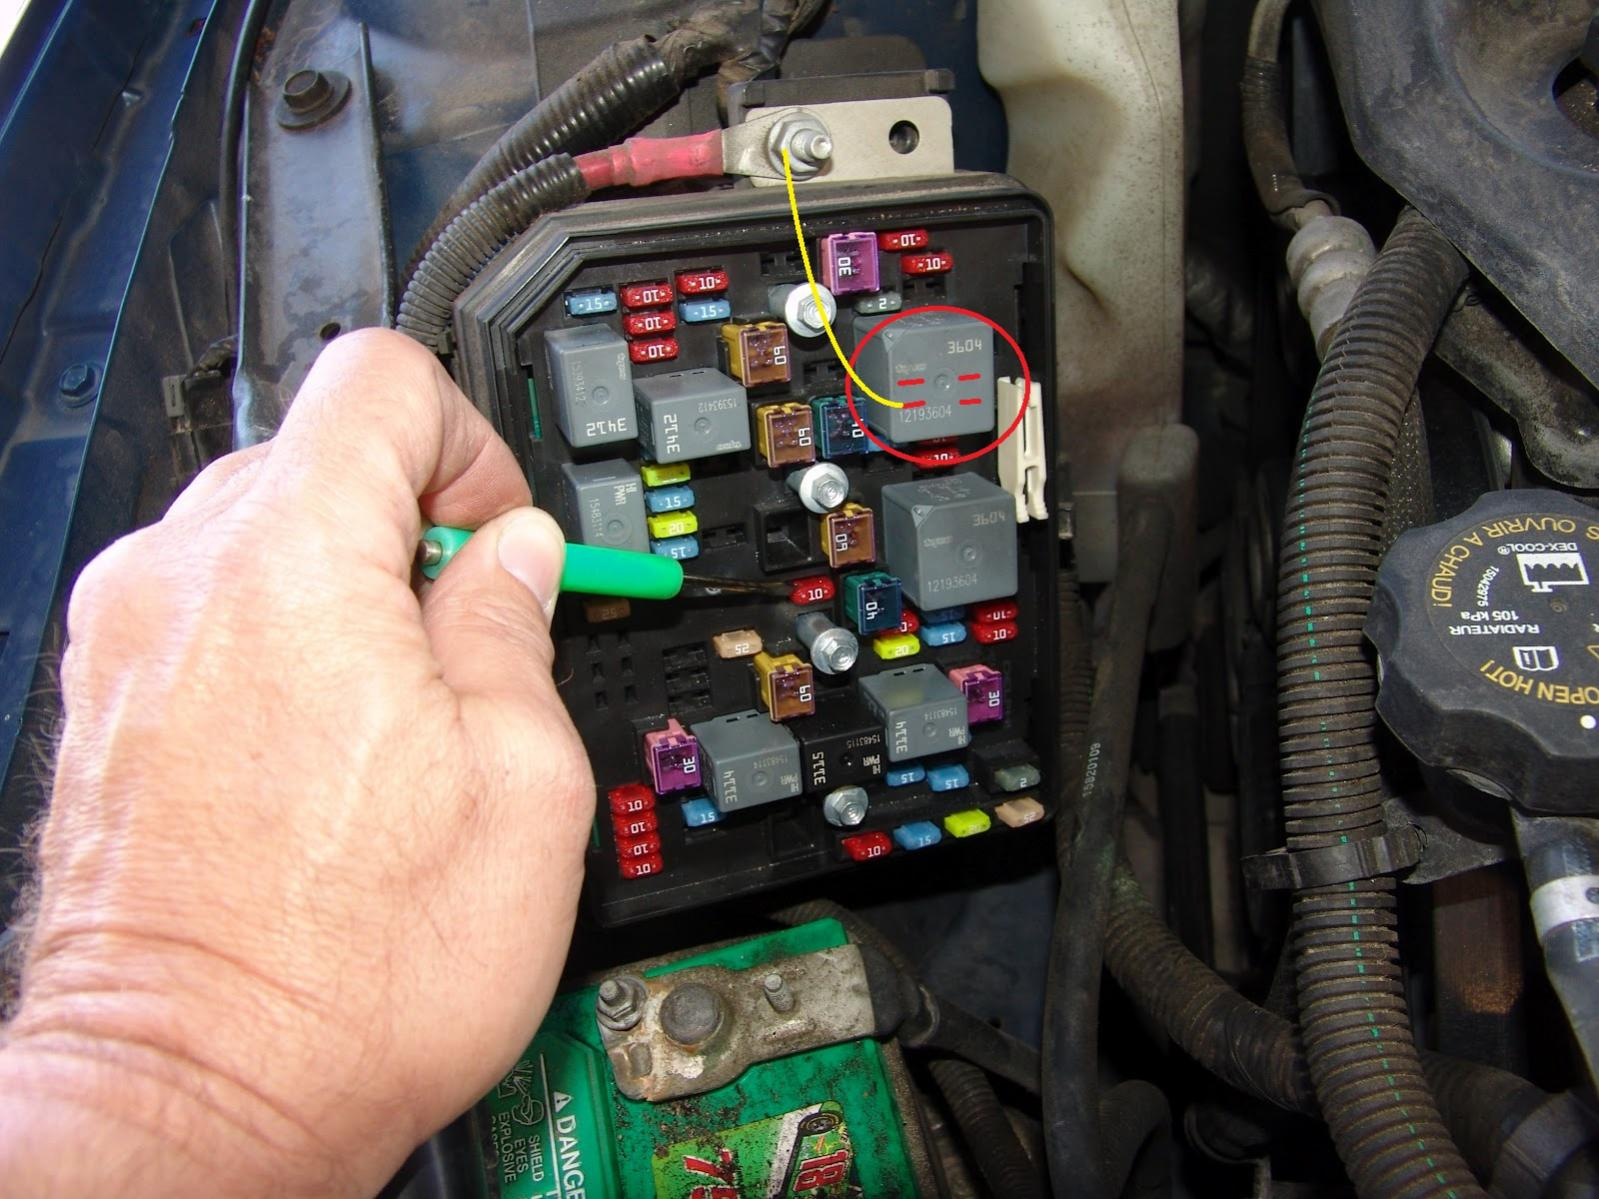 2006 Chevrolet Uplander Fuse Box Diagram